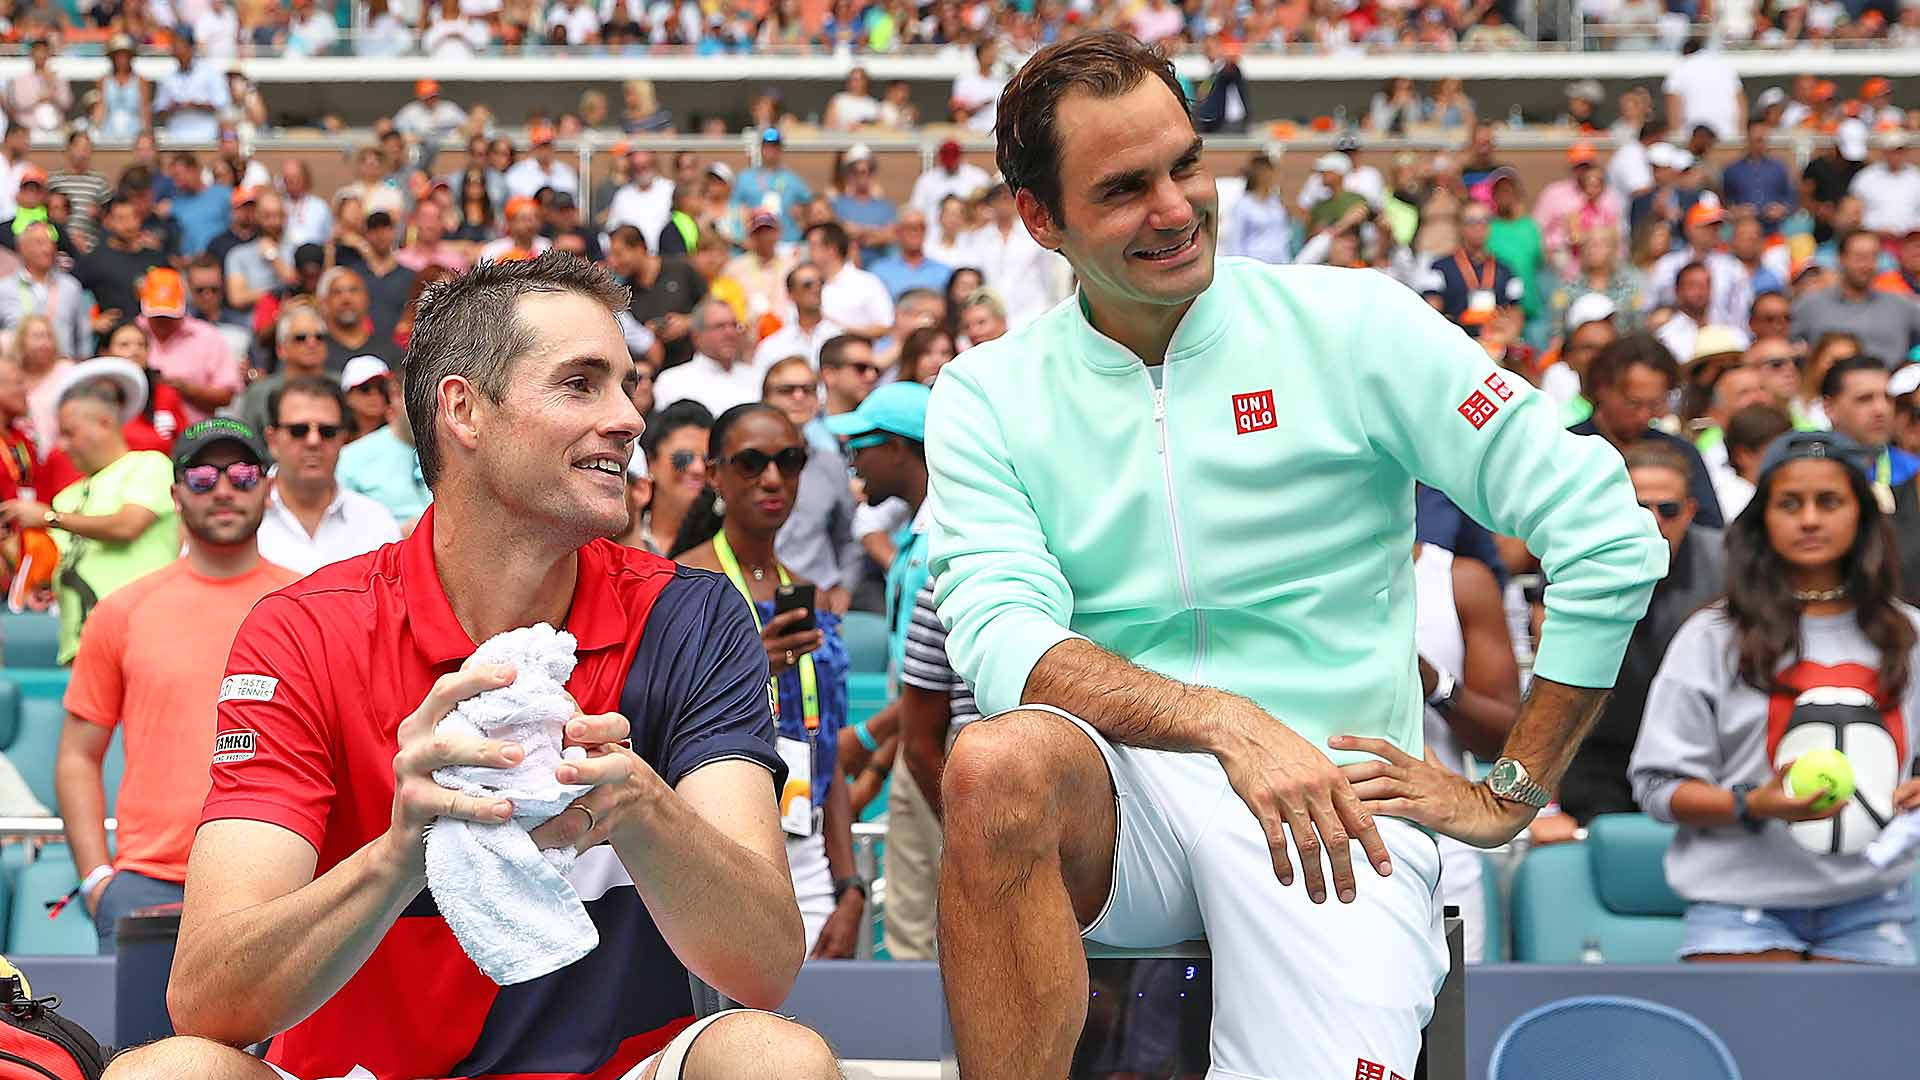 John Isner and Roger Federer after the 2019 Miami final